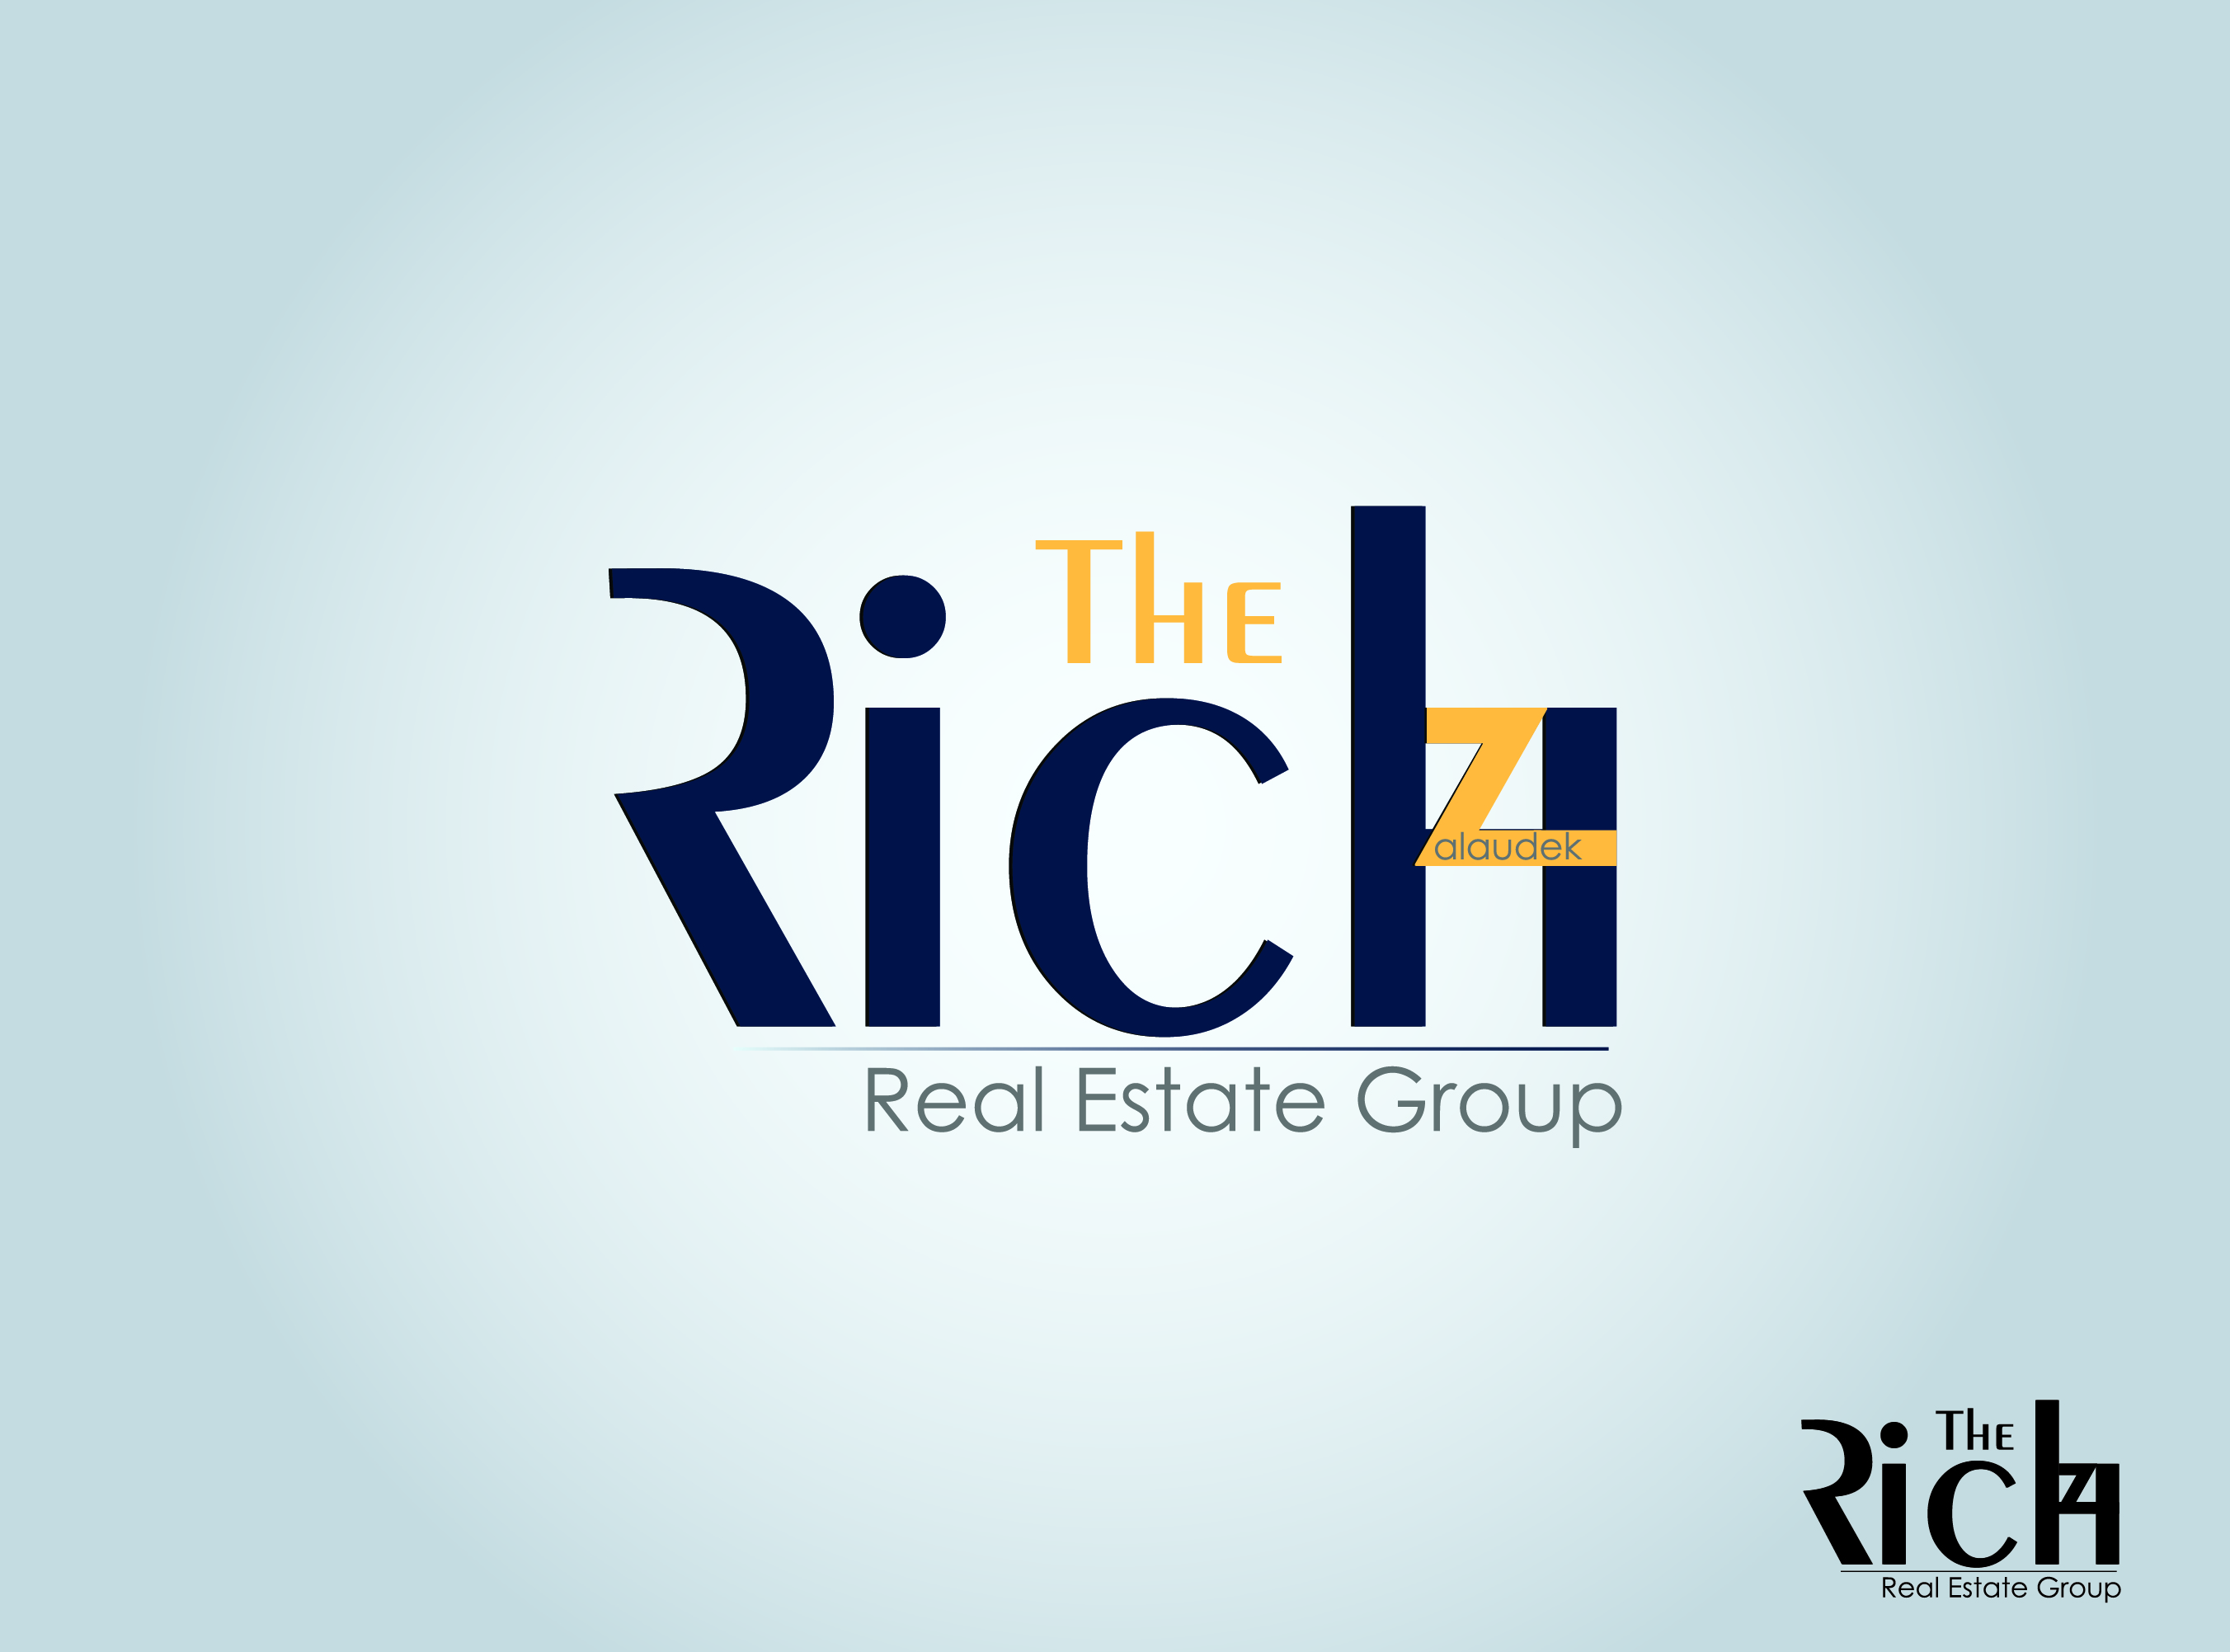 Logo Design by nTia - Entry No. 106 in the Logo Design Contest The Rich Z. Real Estate Group Logo Design.